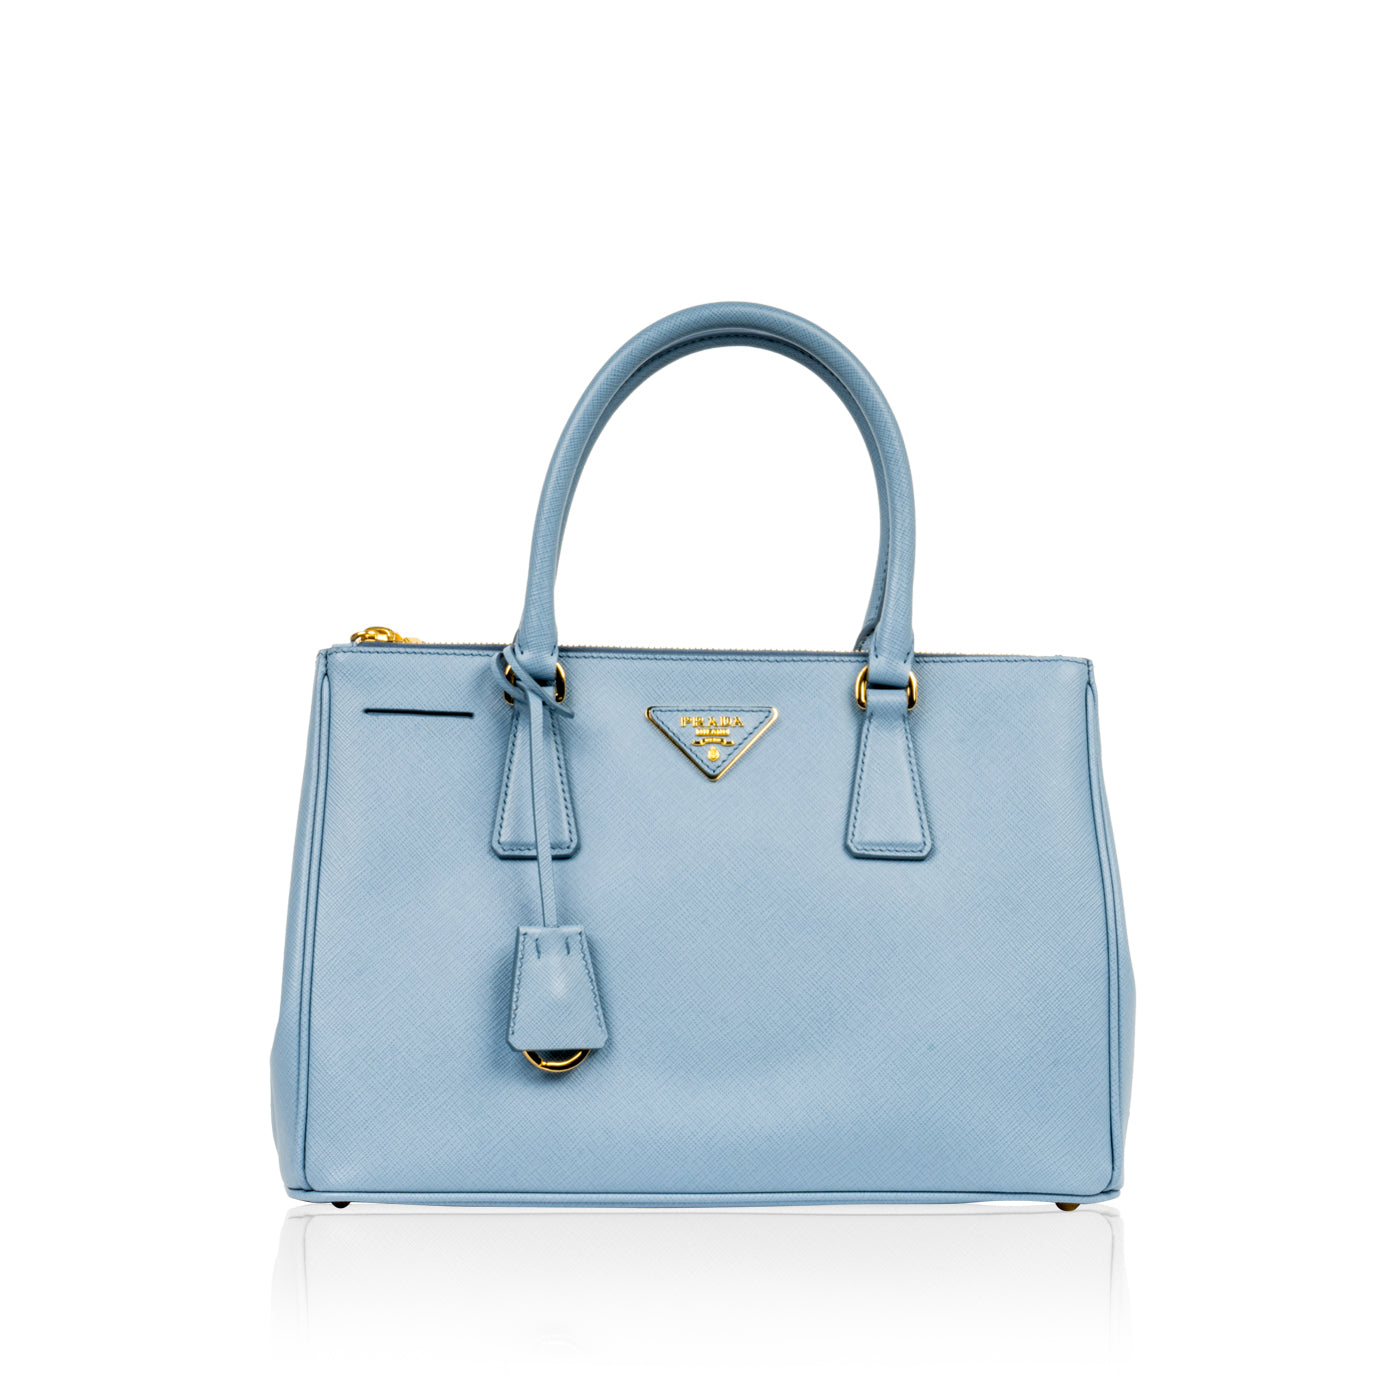 c952fe23328331 Prada - Galleria - Baby Blue - New | Bagista